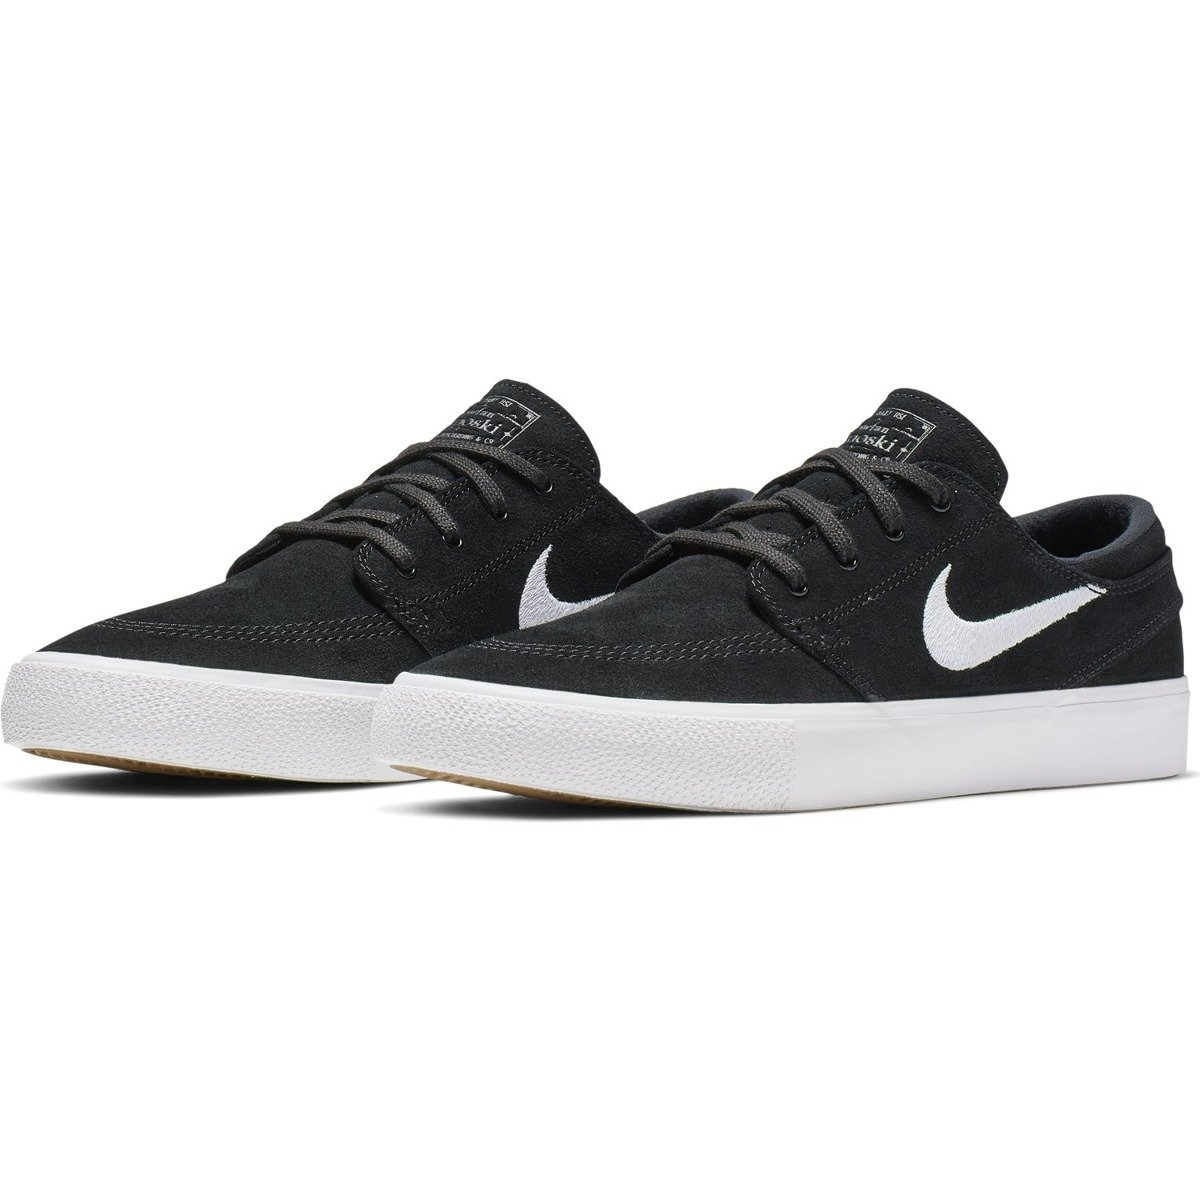 Sympton absorción circulación  Nike Sb Zoom Stefan Janoski RM SE Black/white-thunder Grey-gum Light Brown  BLACK | Shoes \ Nike SB Shoes \ nike janoski Brands \ Nike SB | Skateshop  Miniramp.pl